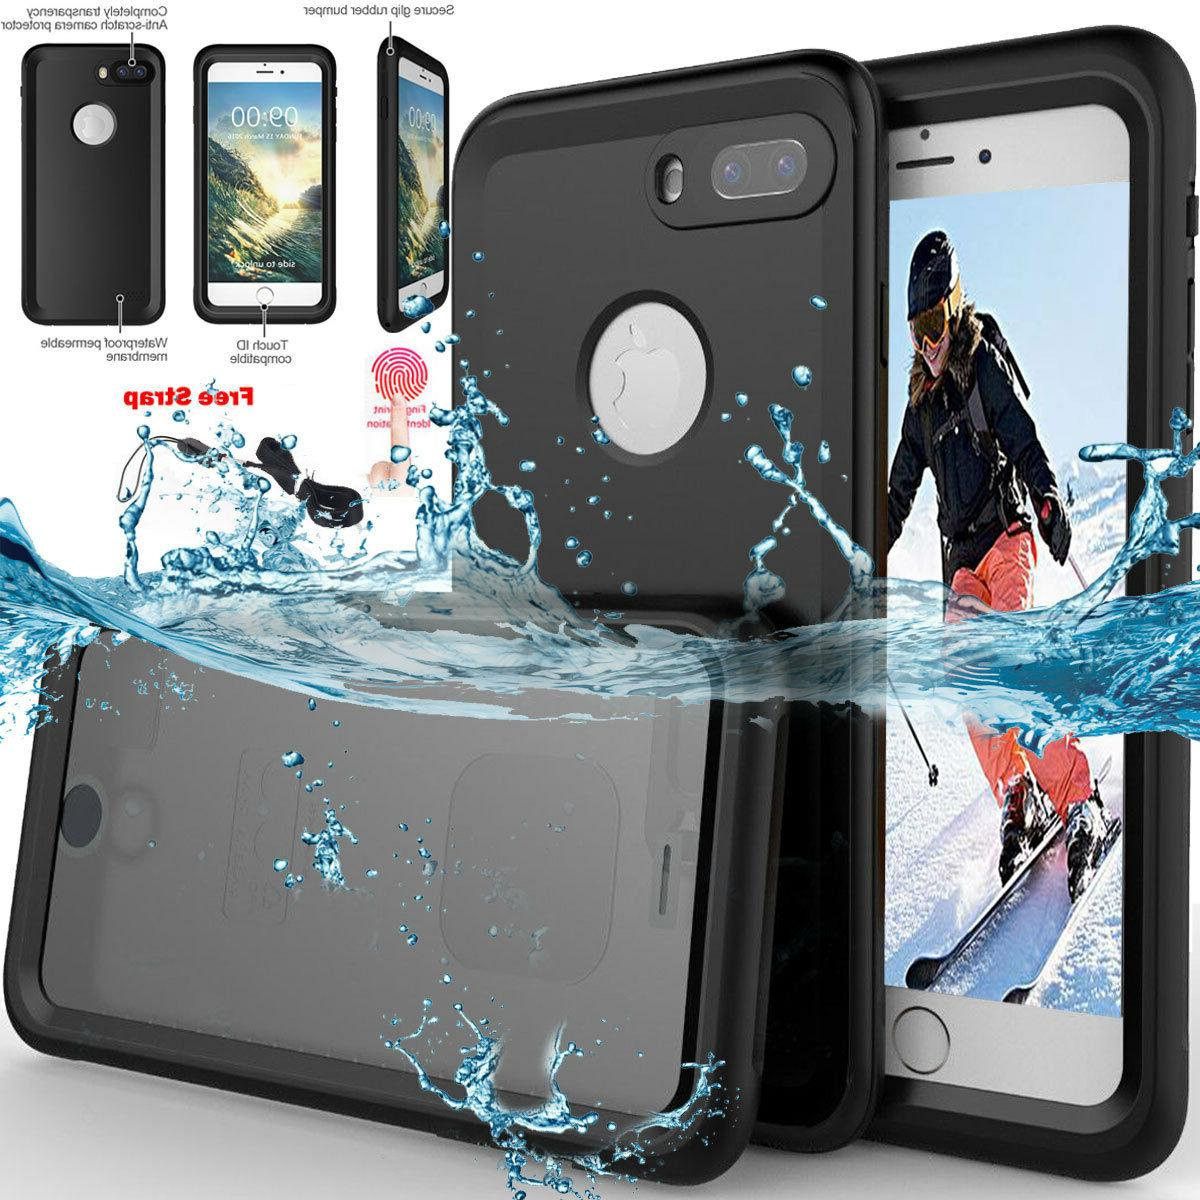 slim waterproof shockproof heavy duty hard case